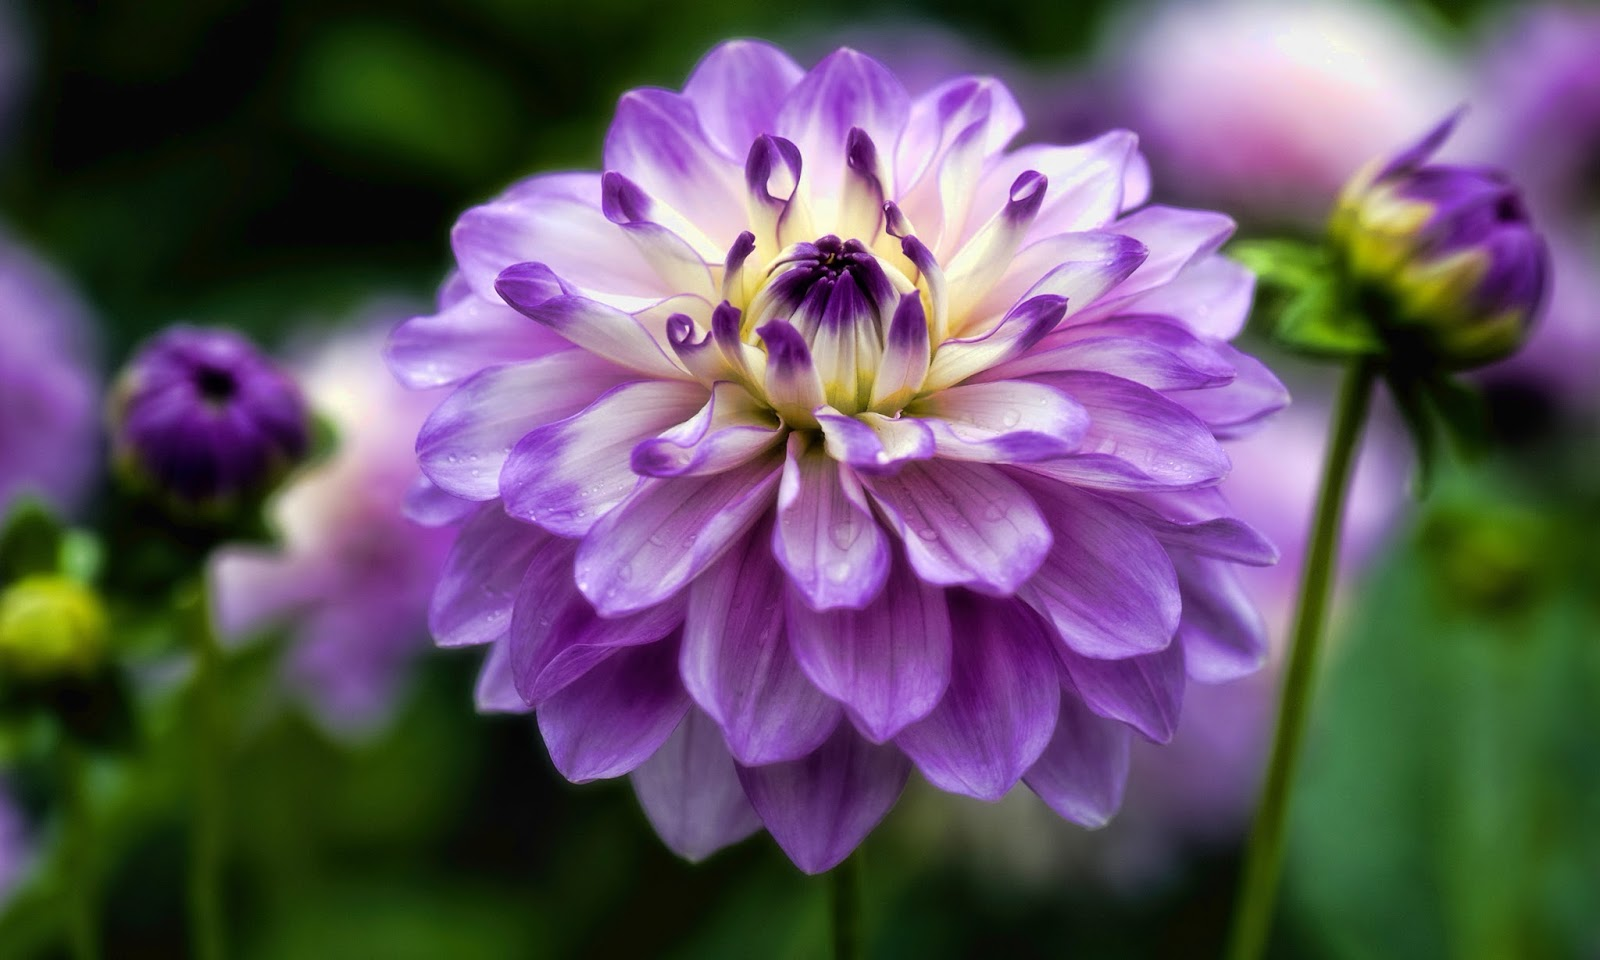 Dahlia Flower Hd Wallpapers Hd Wallpapers High HD Wallpapers Download Free Images Wallpaper [1000image.com]